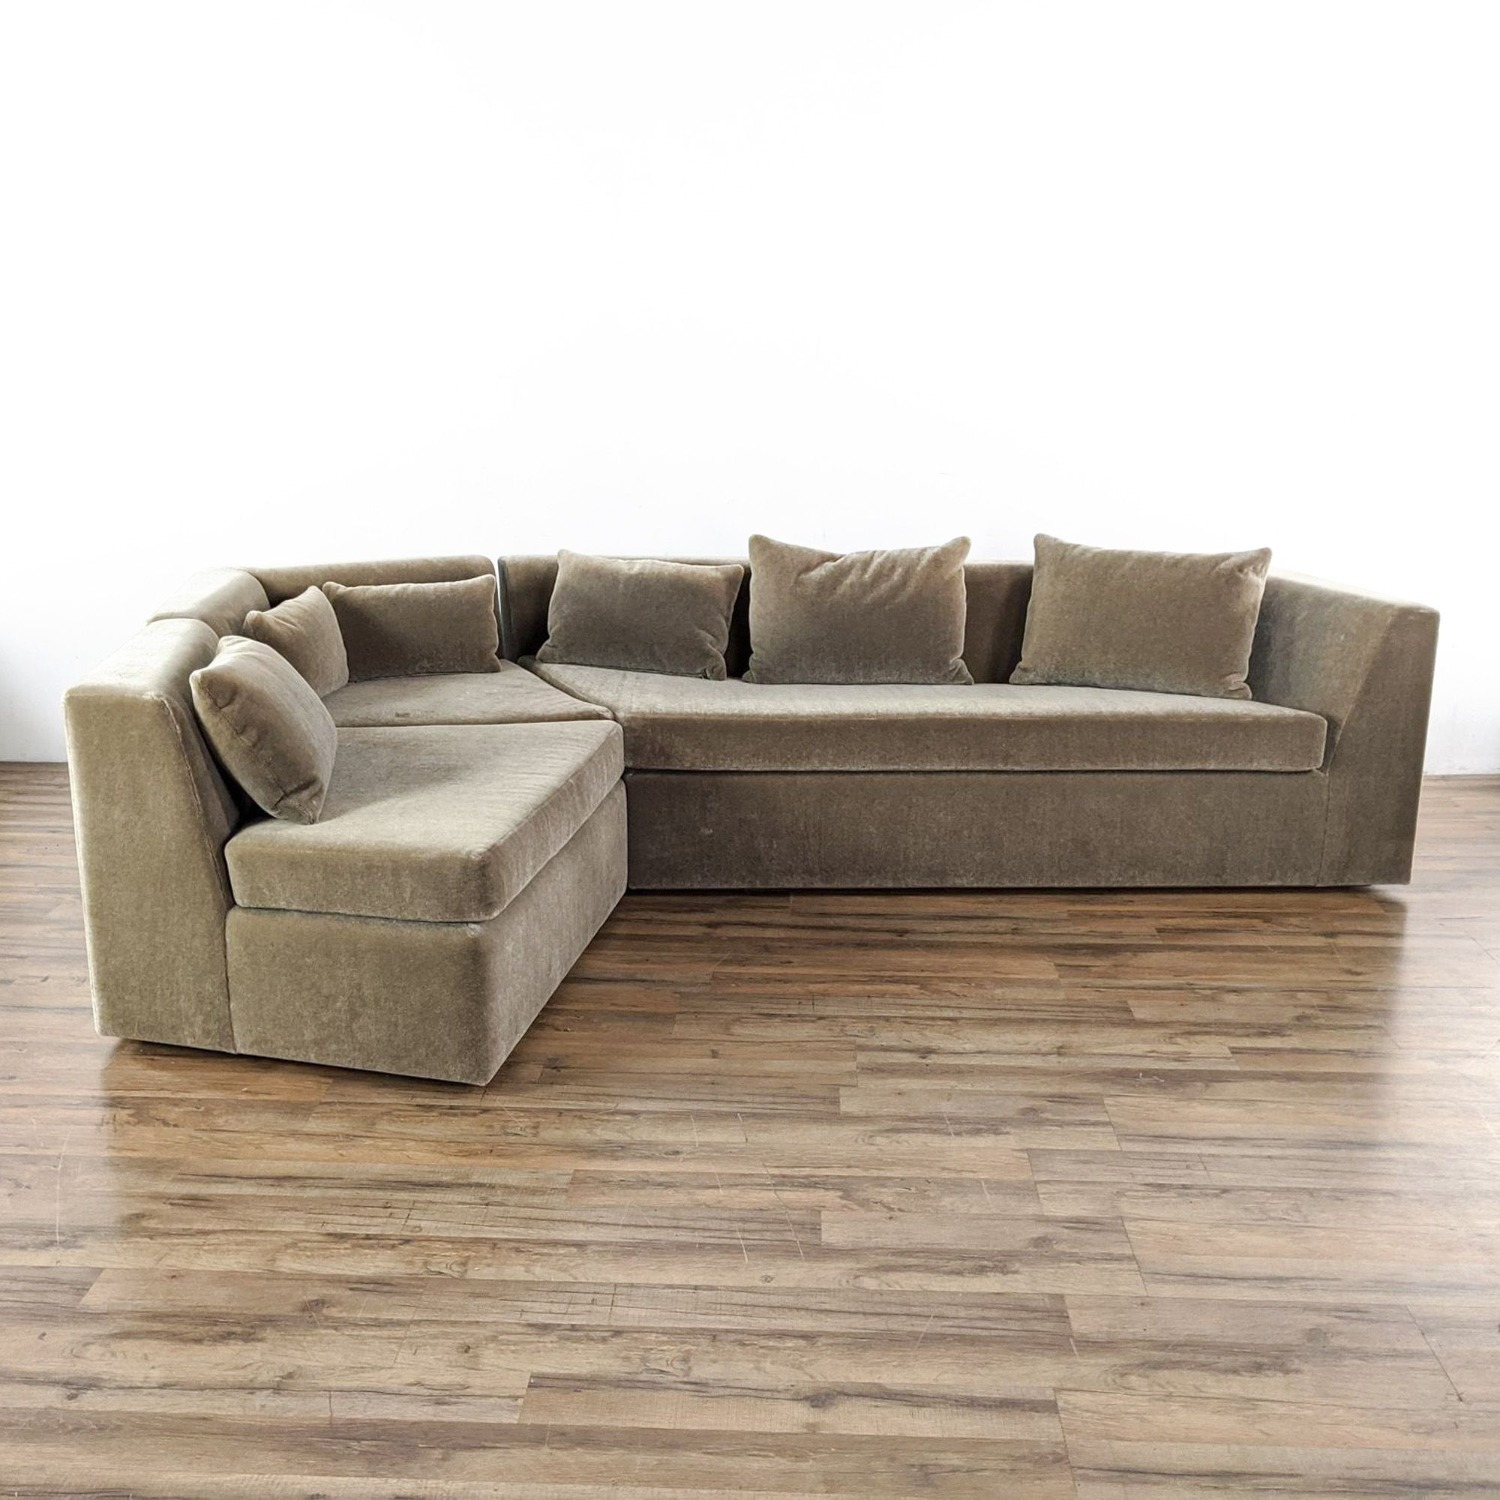 Phase Design Pangea Sectional Sofa in Gray Mohair - image-3